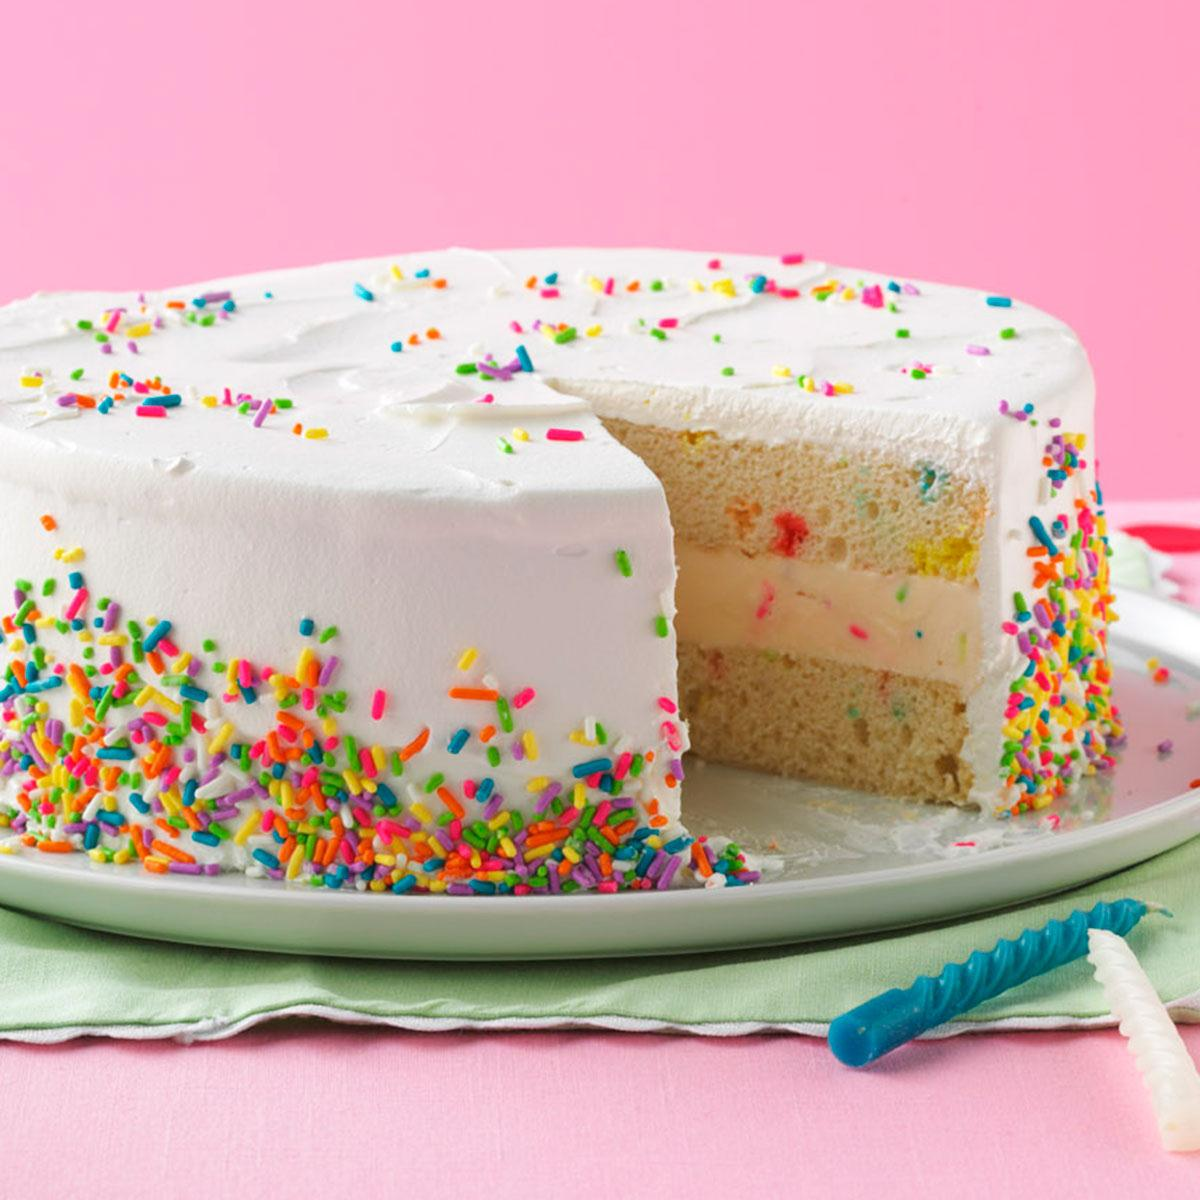 Easy Celebration Ice Cream Cake Recipe